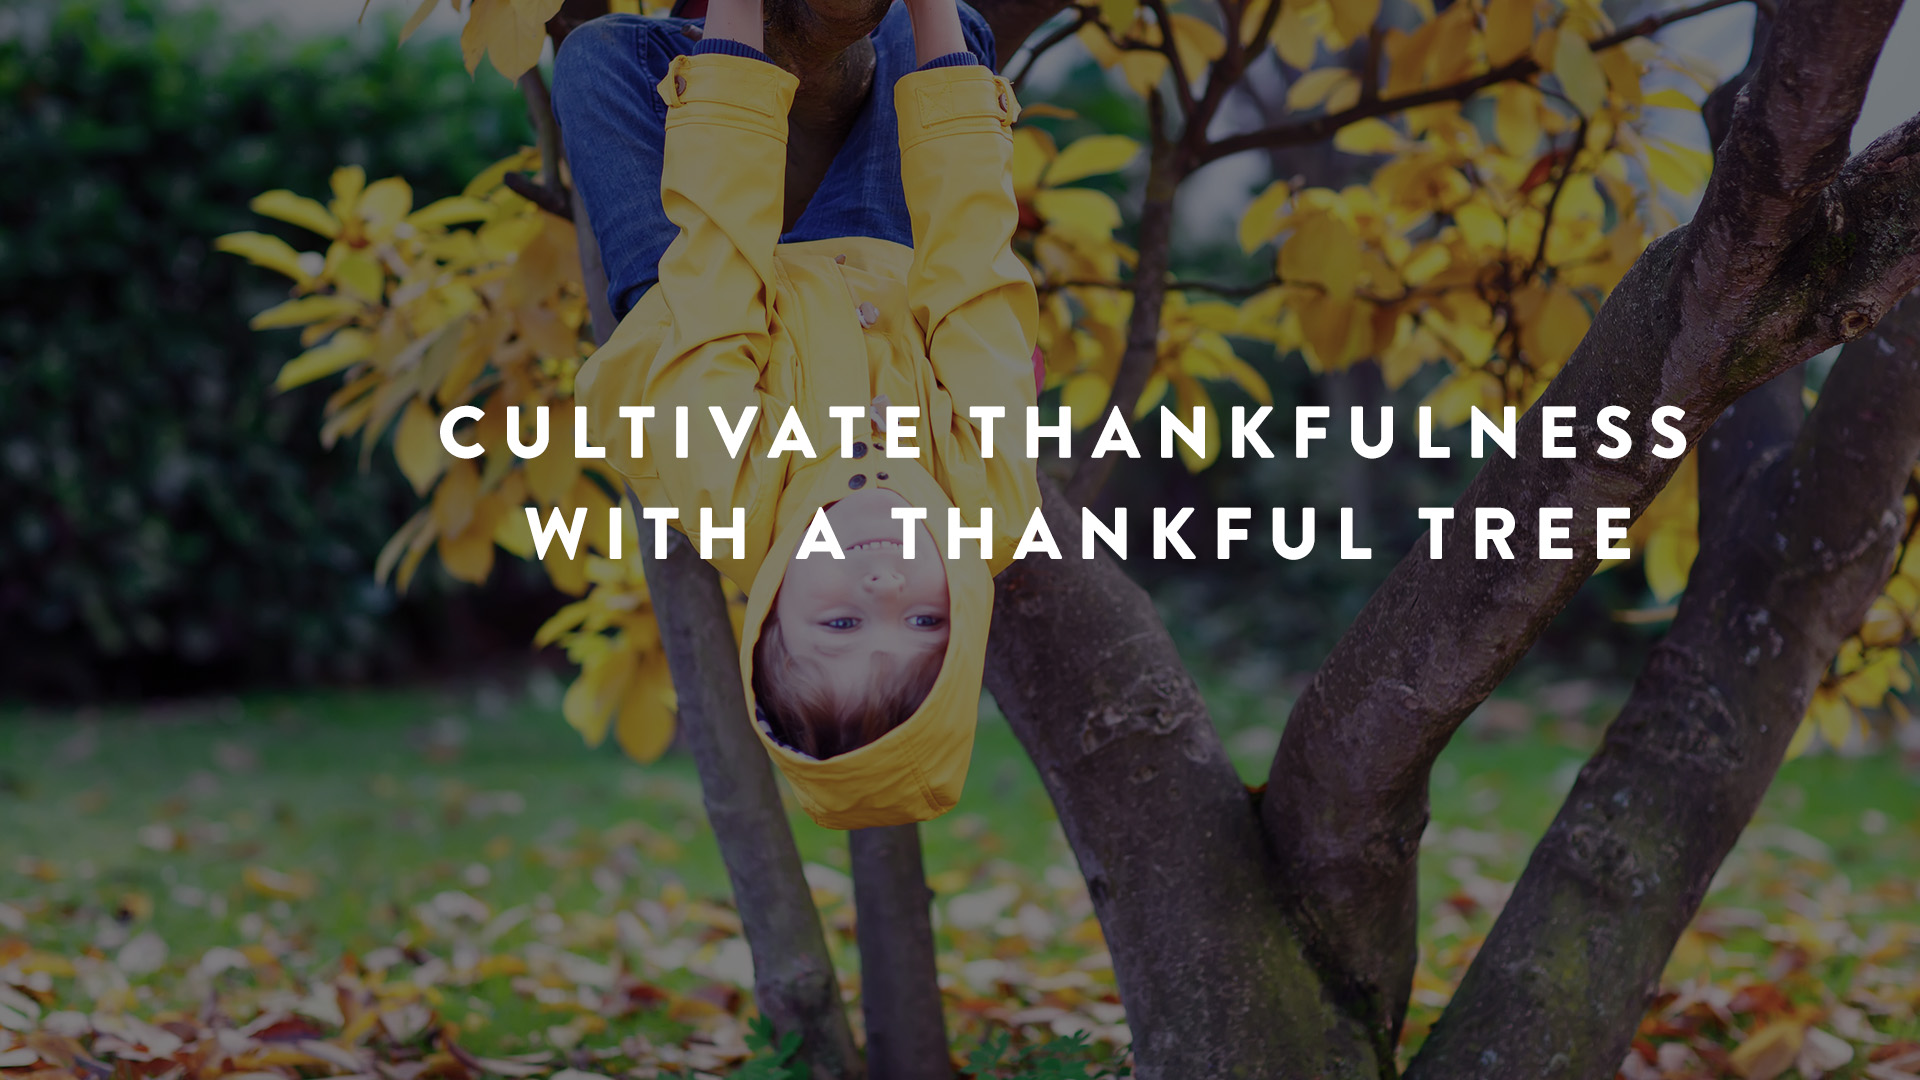 Cultivating Thankfulness with a thankful tree